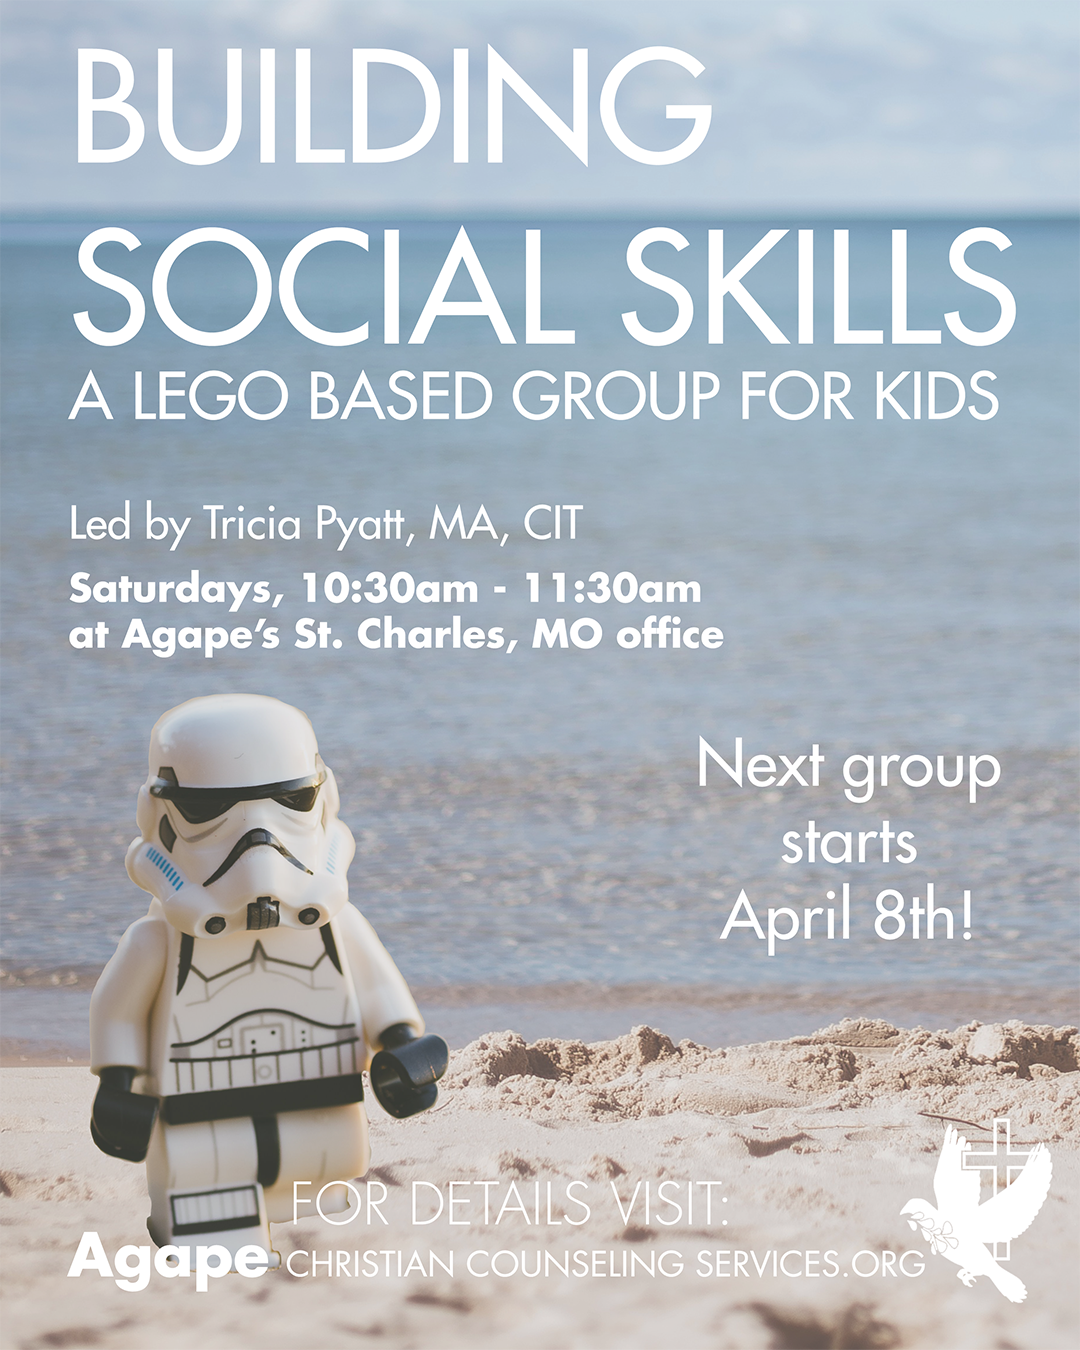 Building Social Skills Lego Group - Storm Trooper on Beach Apr 8th